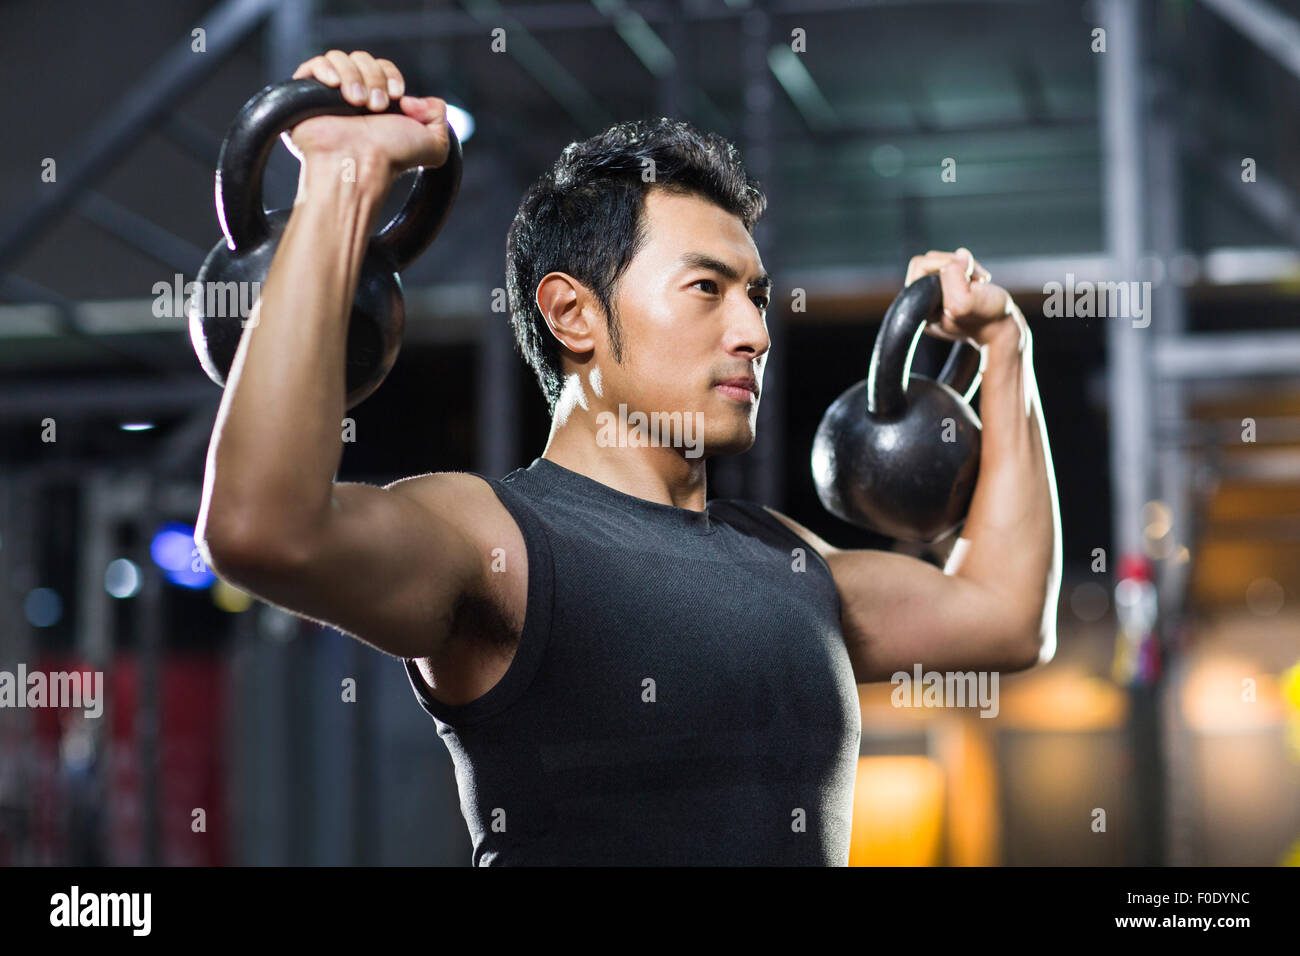 Young man training with kettlebells in crossfit gym - Stock Image